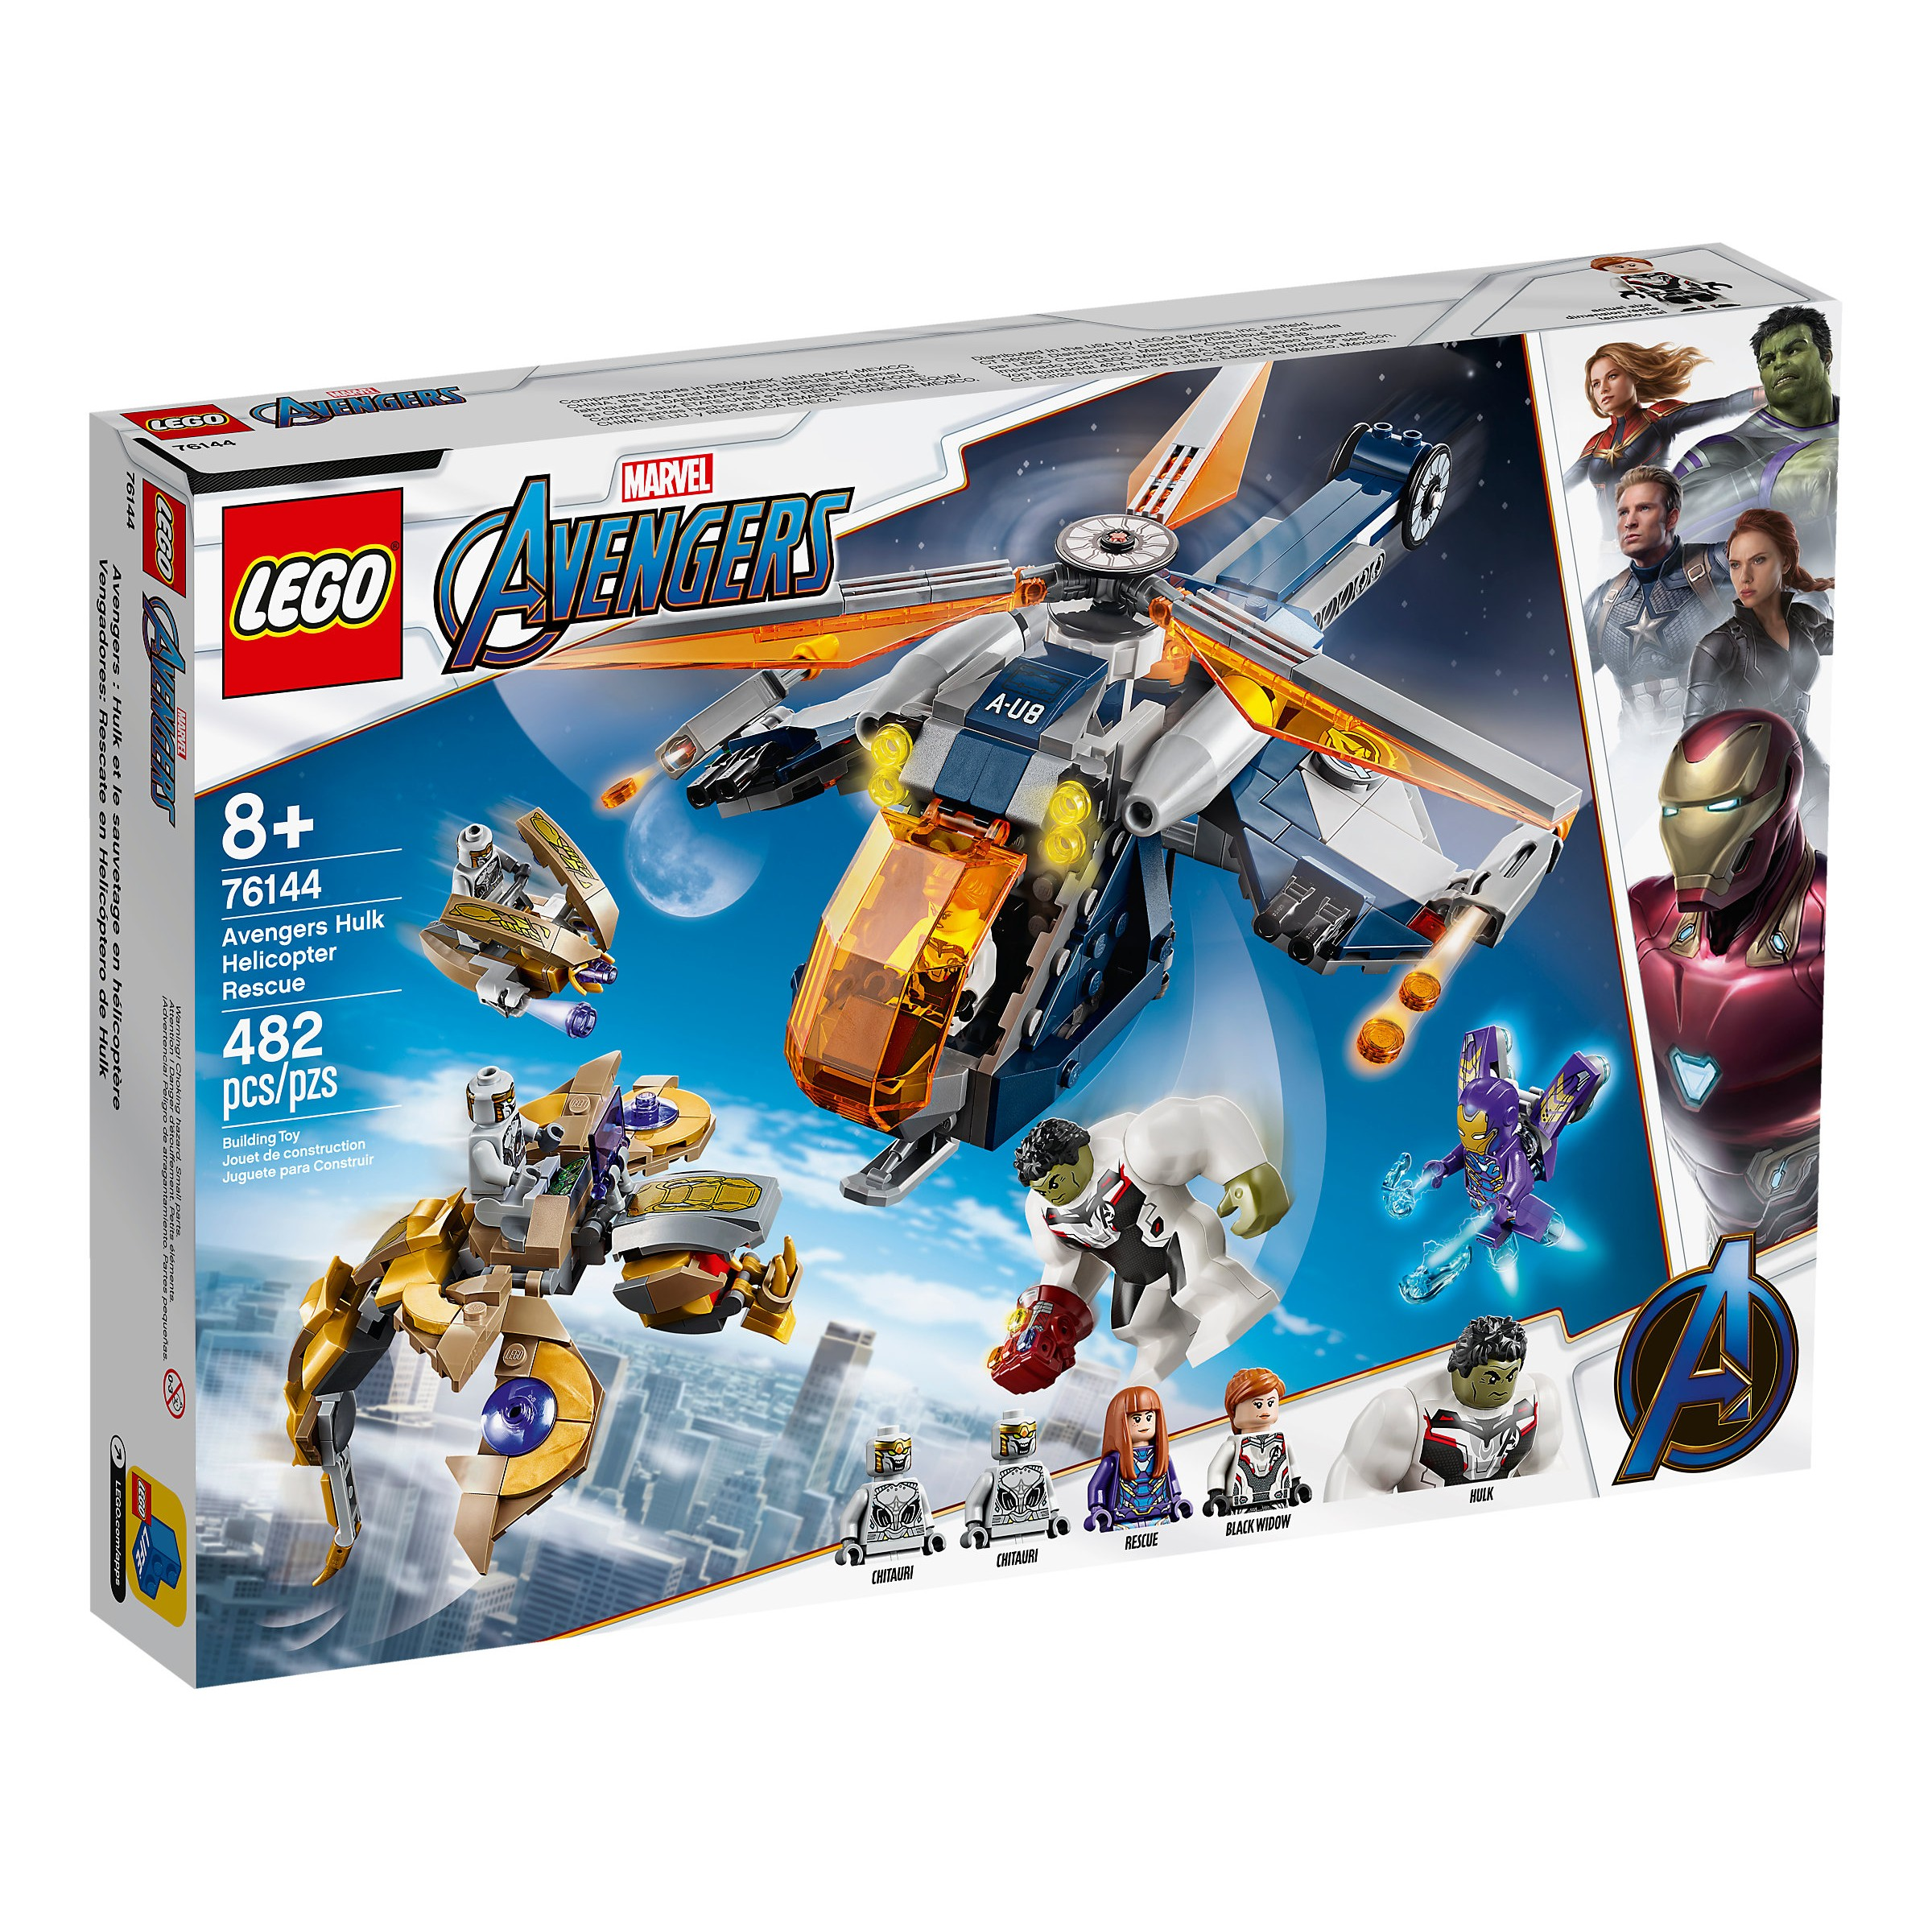 Lego 76144 Marvel Avengers Hulk Helicopter Rescue At Toys R Us